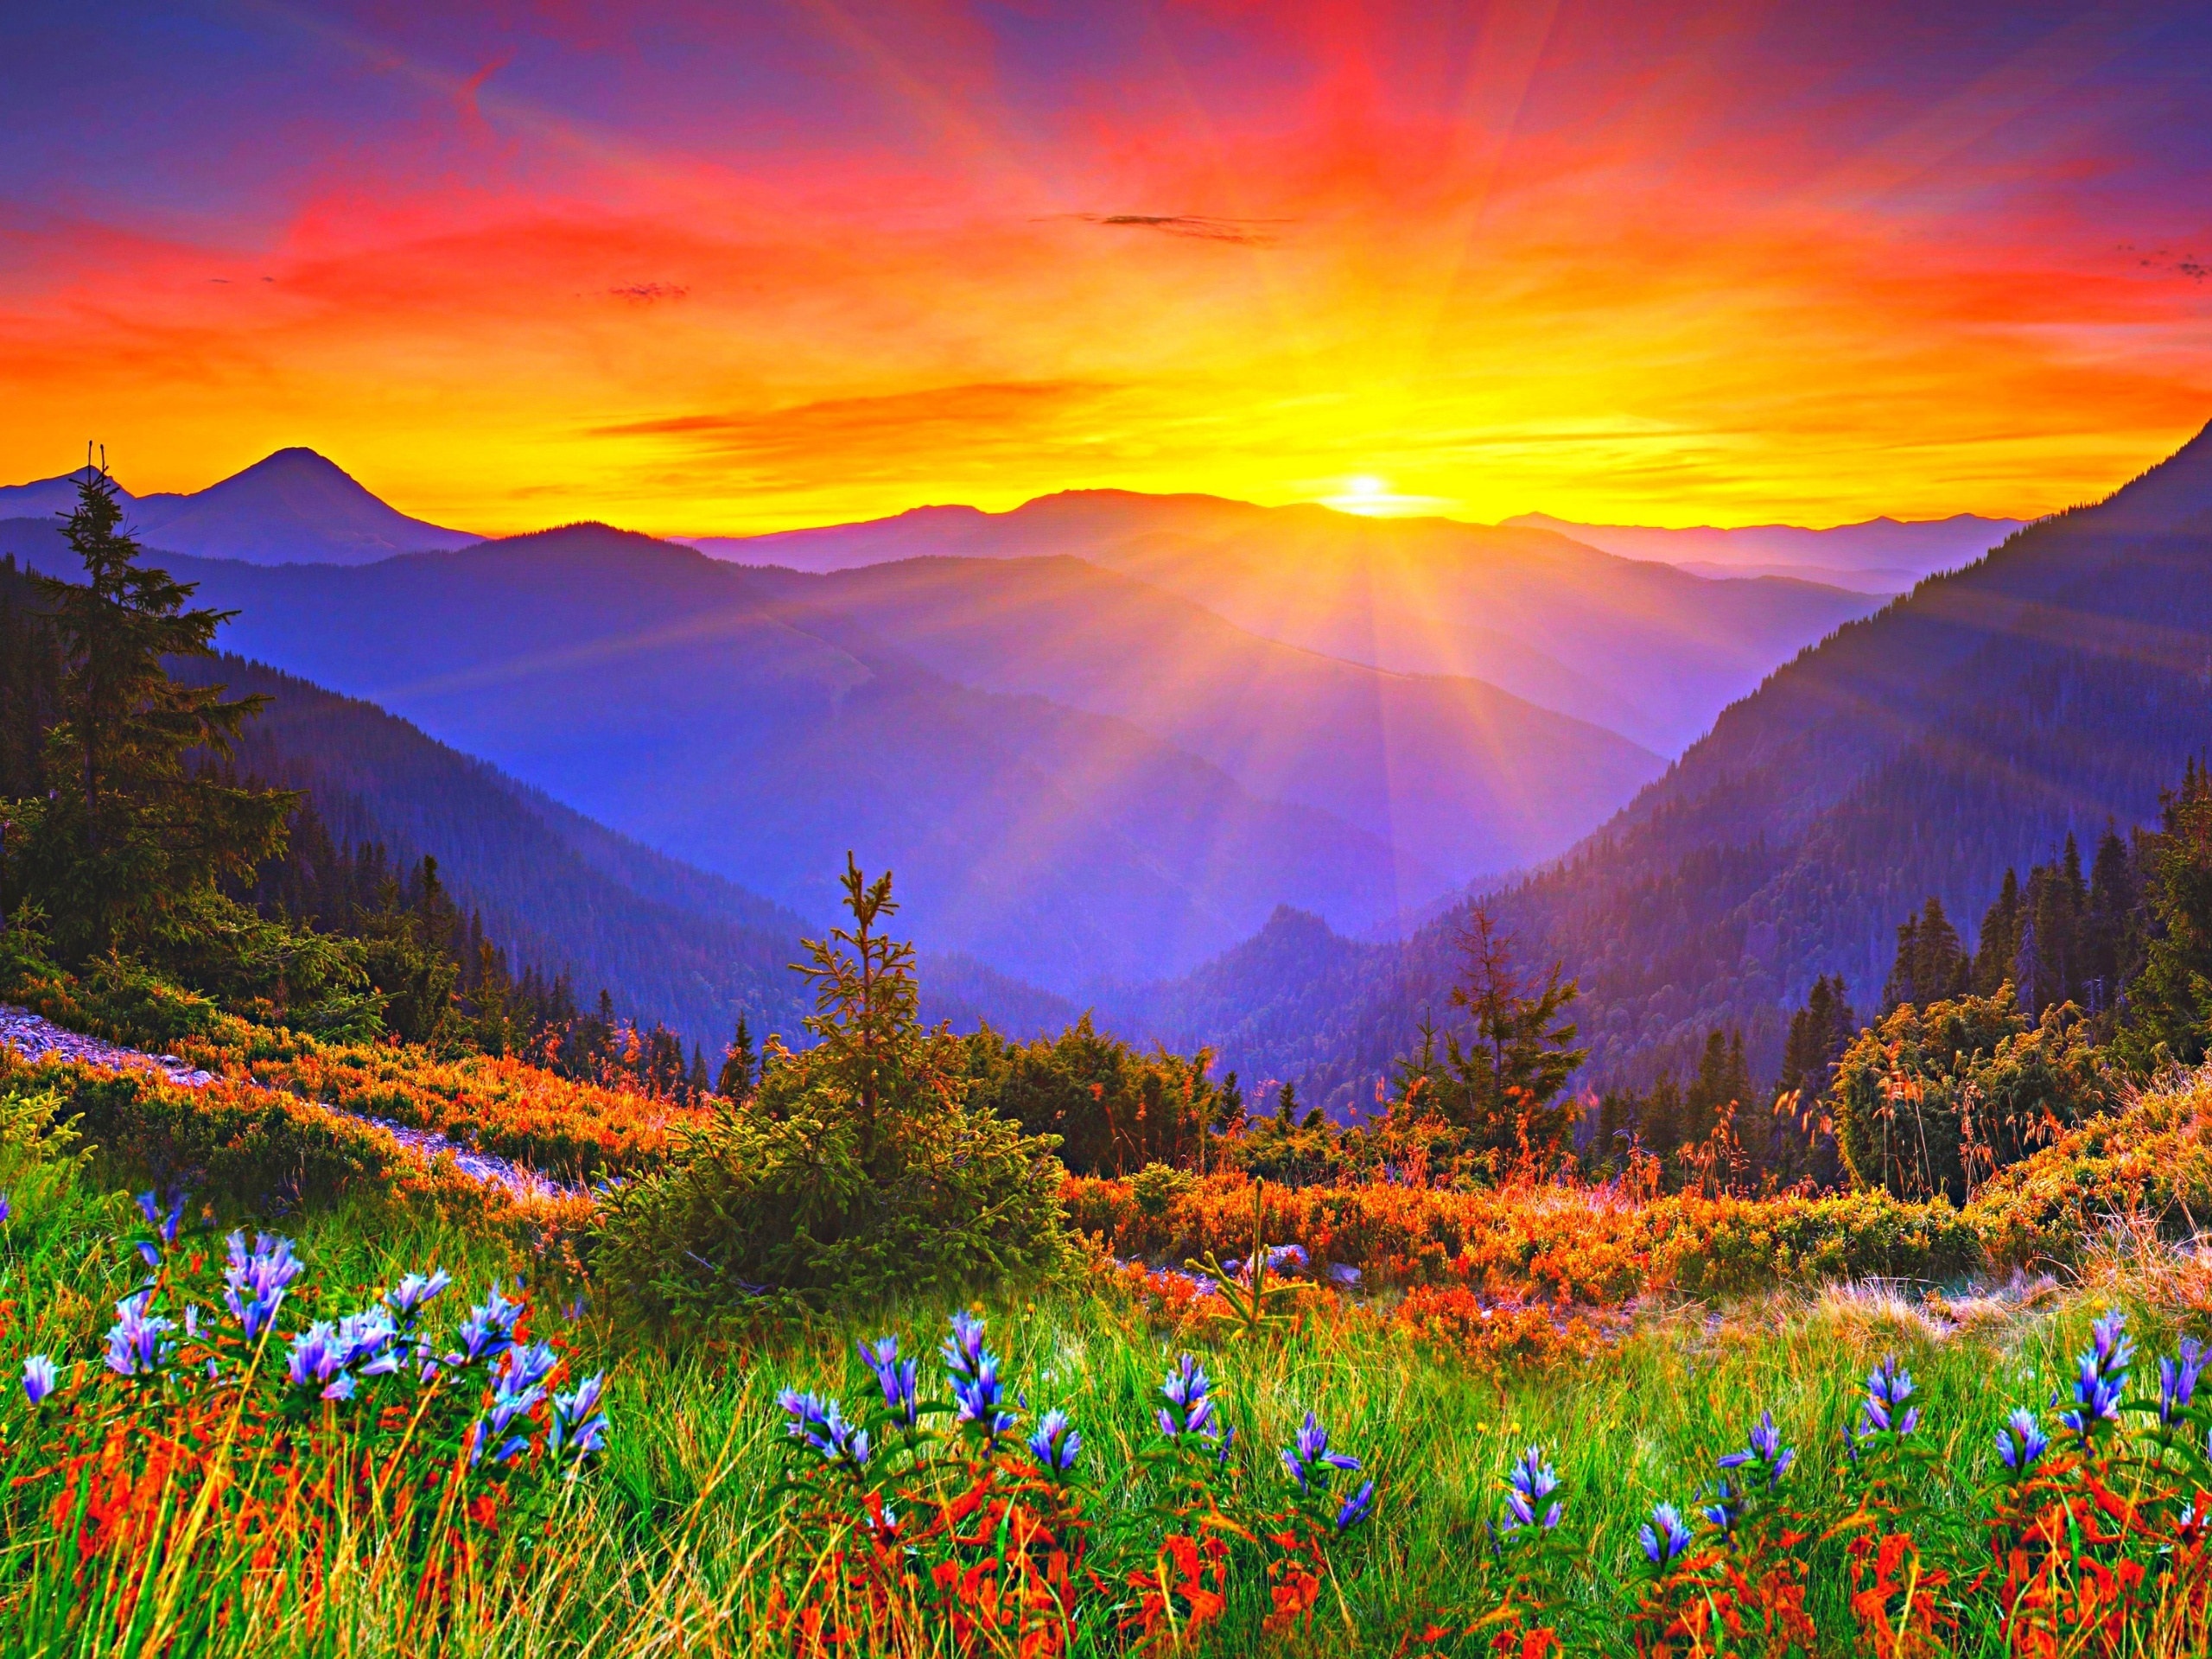 sunrise pictures in the mountains - 1200×675